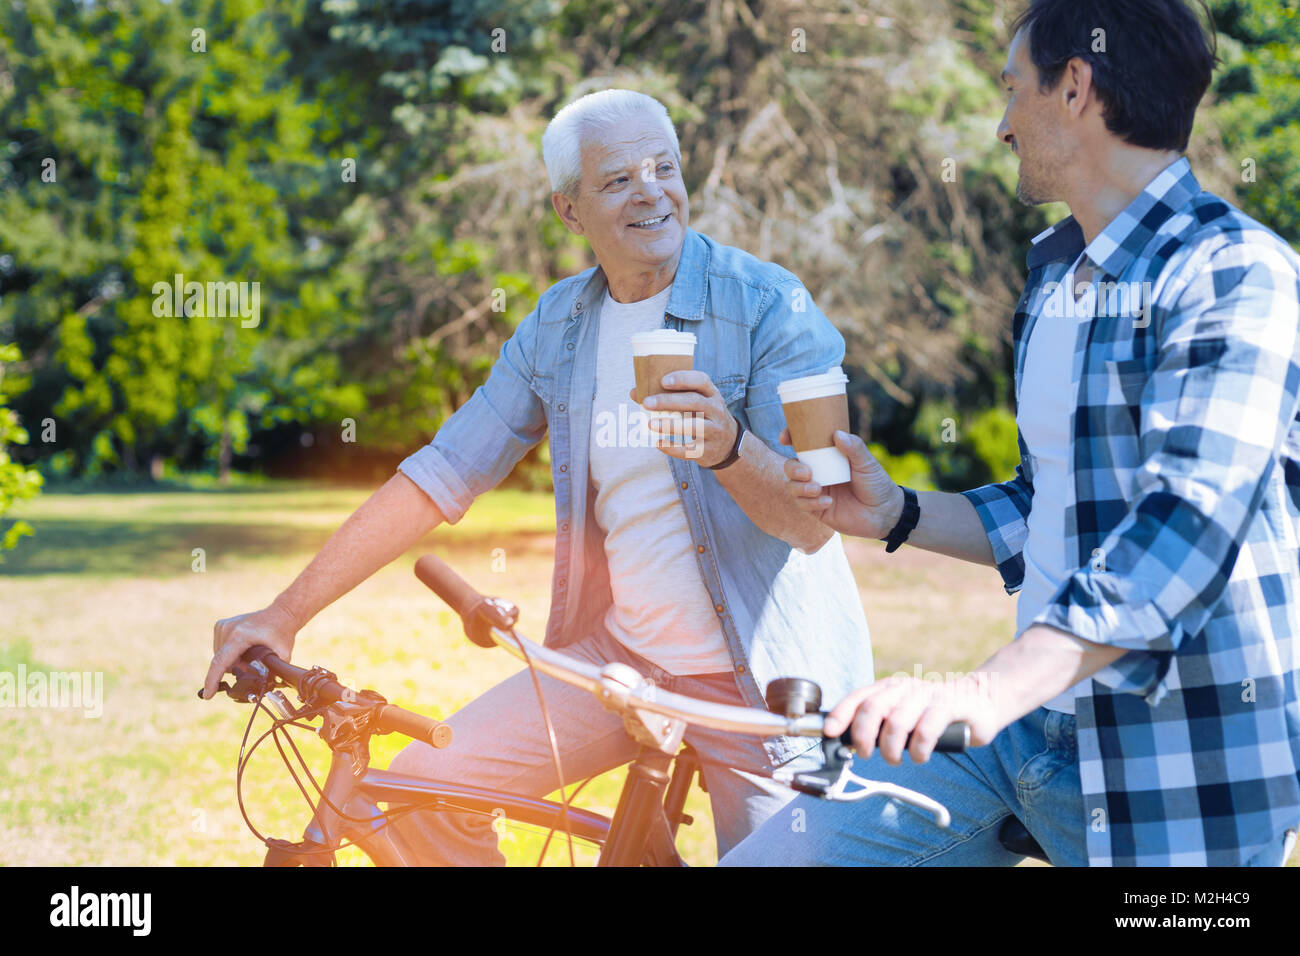 Relaxed father and son spending time together - Stock Image